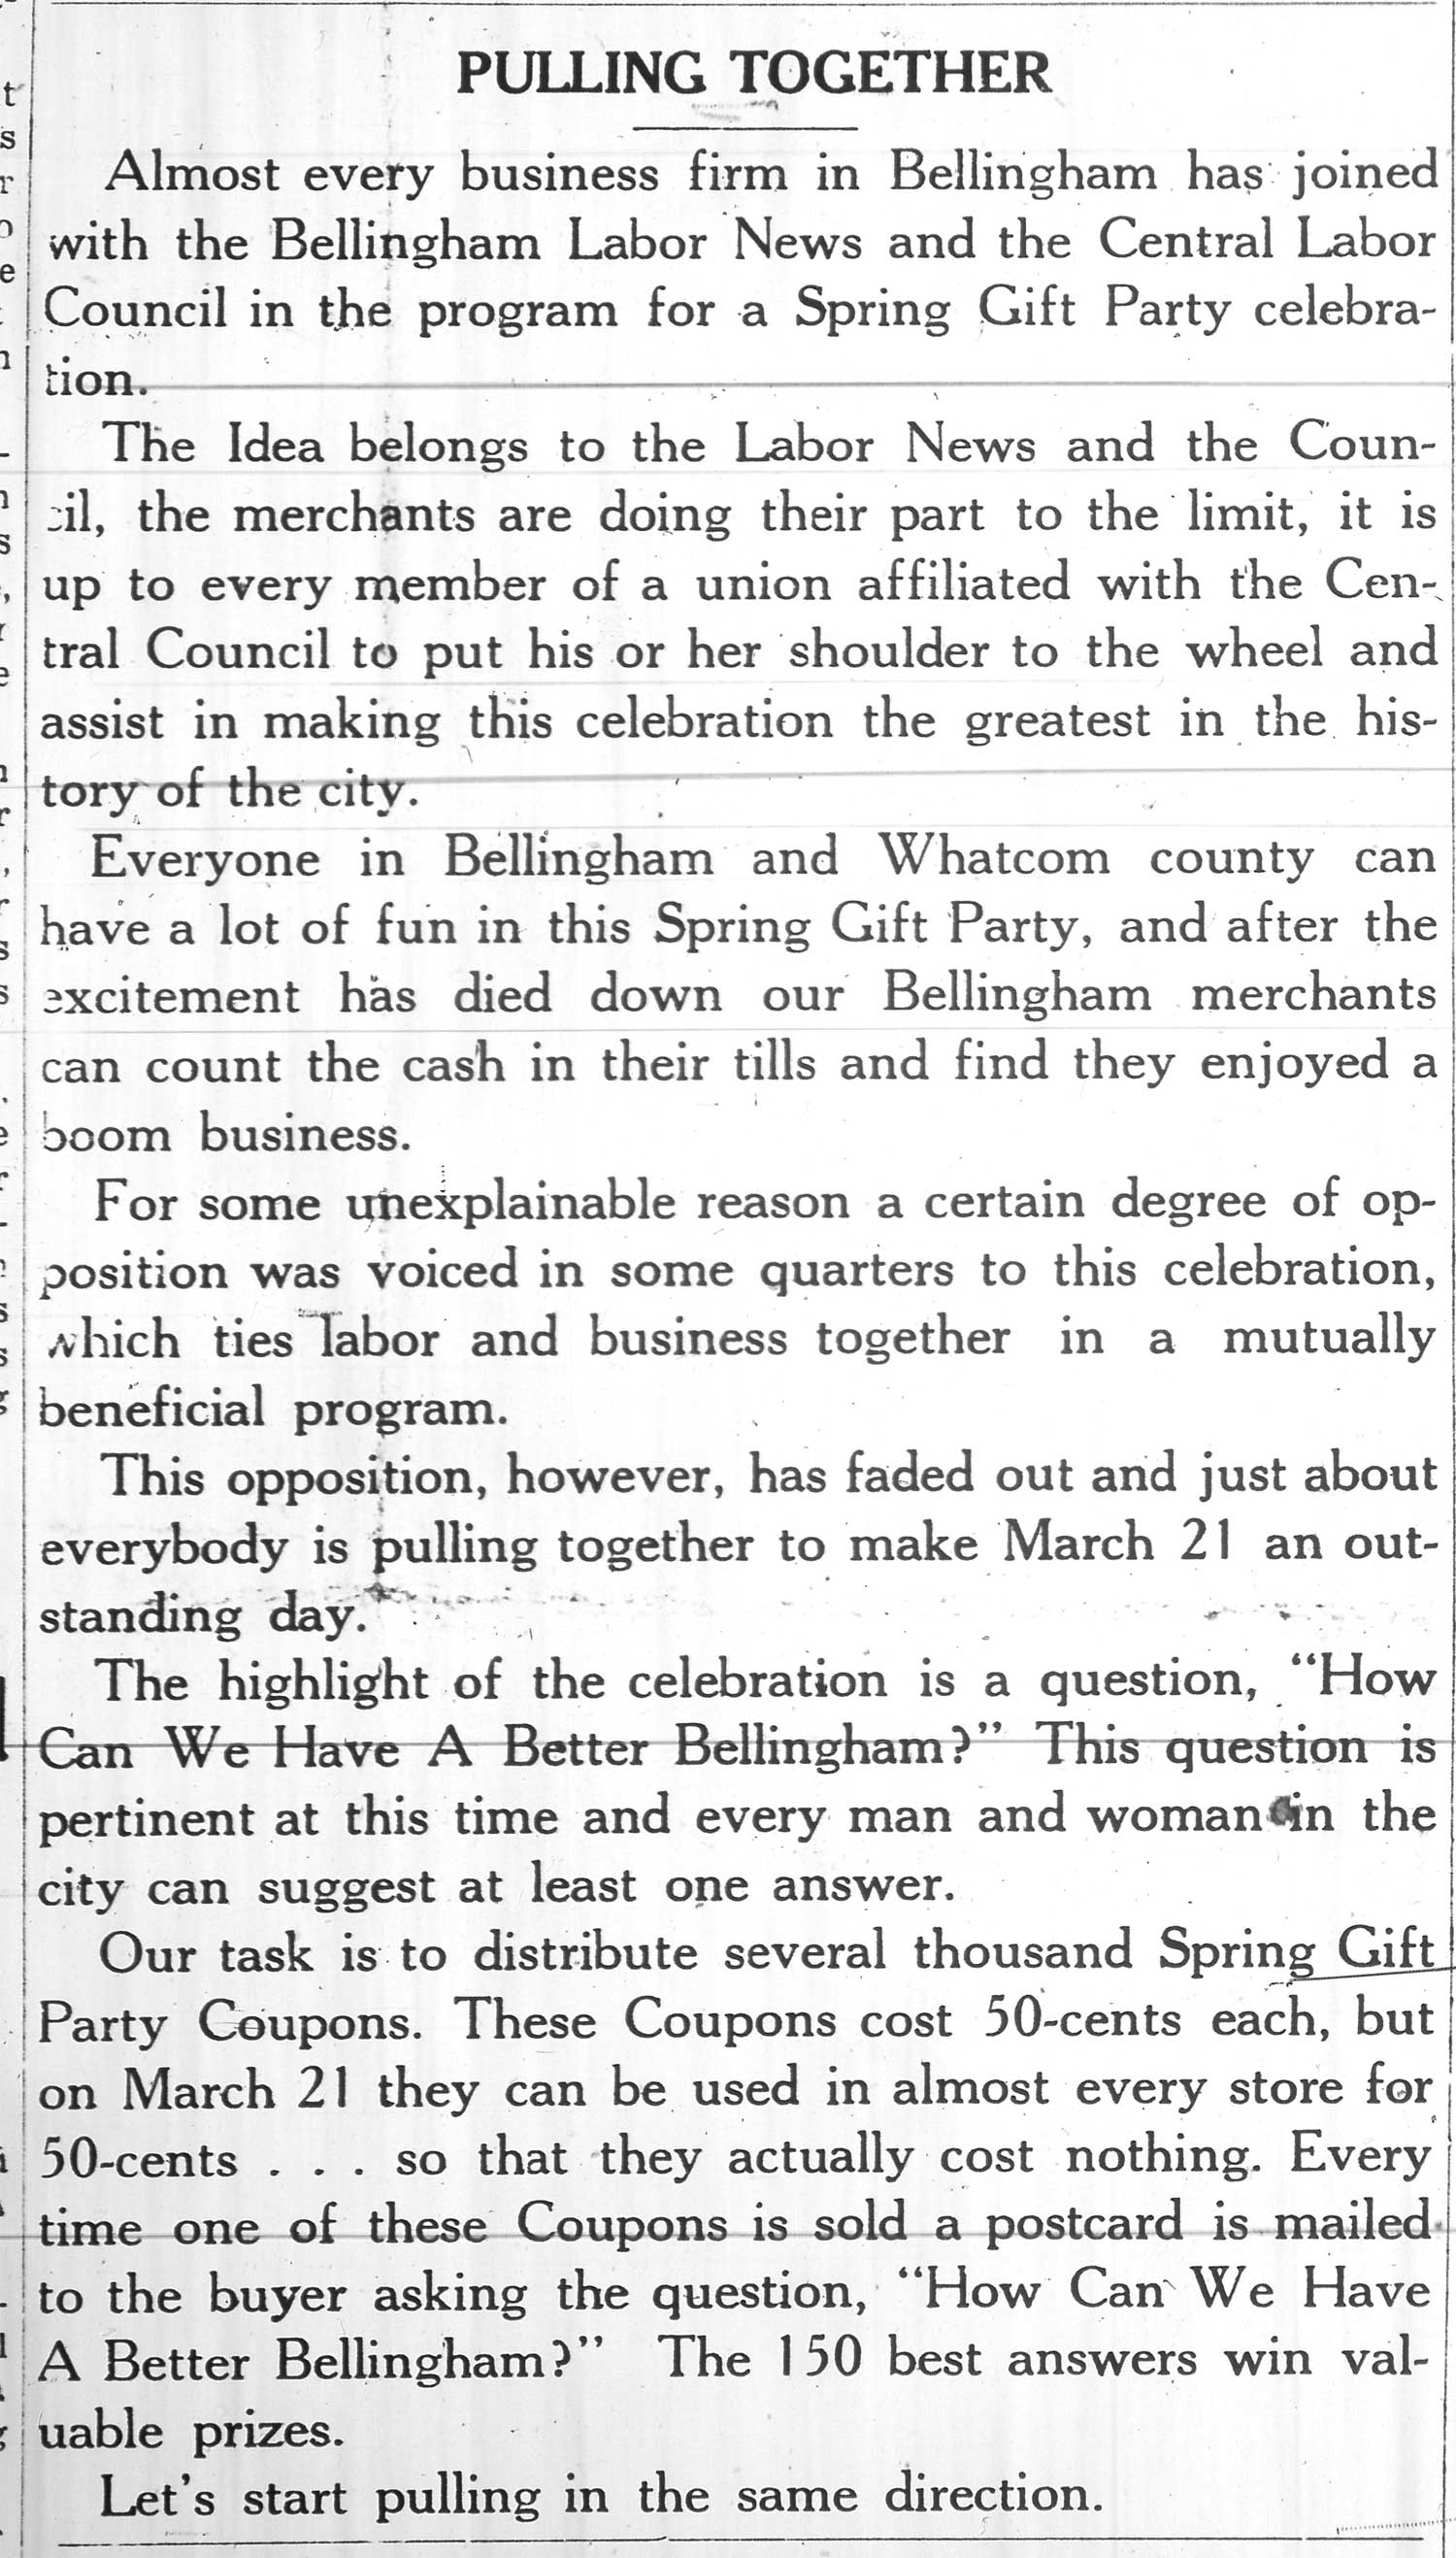 bellingham labor news the bellingham labor news not only sought to advance the labor movement but also create a better city